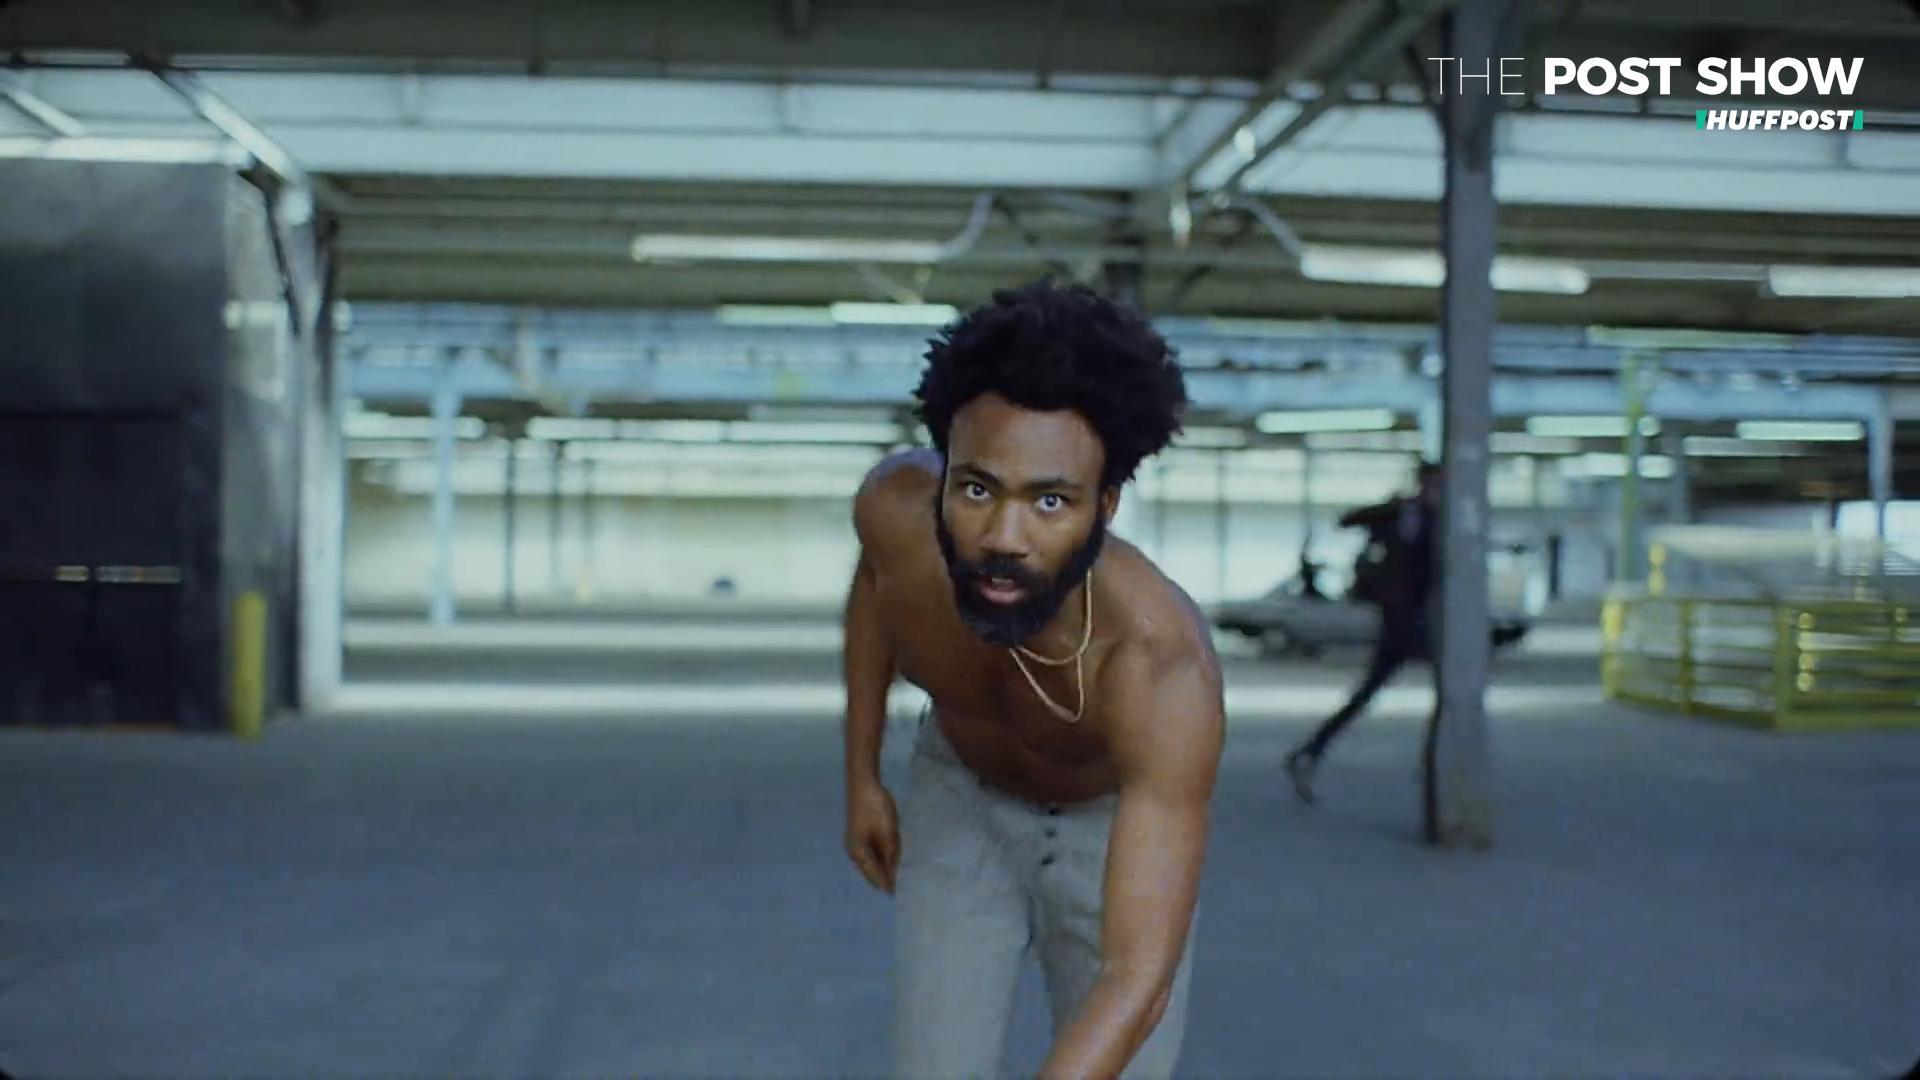 'This Is America' Producer Reveals New Details About Childish Gambino's Viral Video